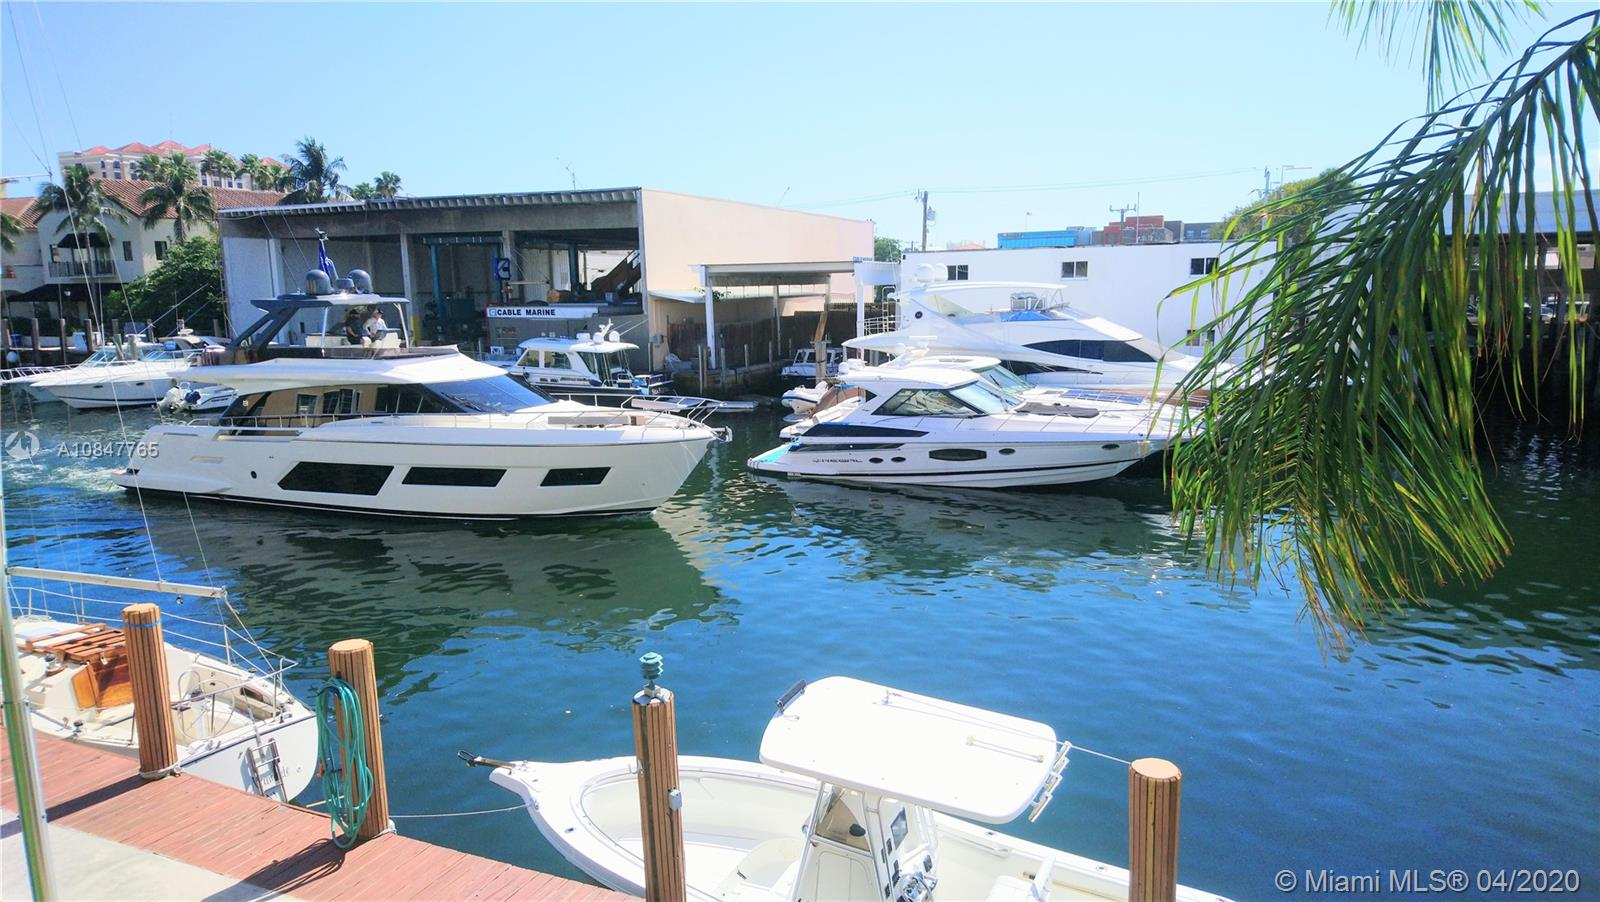 2BED/2BATH WATERFRONT CONDO IN THE DESIREABLE MARINA DEL MAR COMMUNITY, CORNER UNIT FEATURES THE BEST VIEW IN THE BUILDING! EXTRA WINDOWS ALLOWING NATURAL LIGHT AND VIEWS OF MILLION DOLLAR YACHTS FLOATING PAST YOUR LIVING AND DINNING ROOM WINDOWS, SPACIOUS,OPEN FLOOR PLAN UNIT WITH LARGE BEDROOMS, COMPLETELY REMODELED KITCHEN AND BATHROOMS.TILE THROUGHOUT, LOTS OF CLOSET SPACE, NEW A/C, YOU ALSO HAVE A GREAT VIEW OF THE POOL.EVERY BUYERS DREAM!!! WON'T LAST!! EASY TO SHOW, CALL LISTING AGENT.